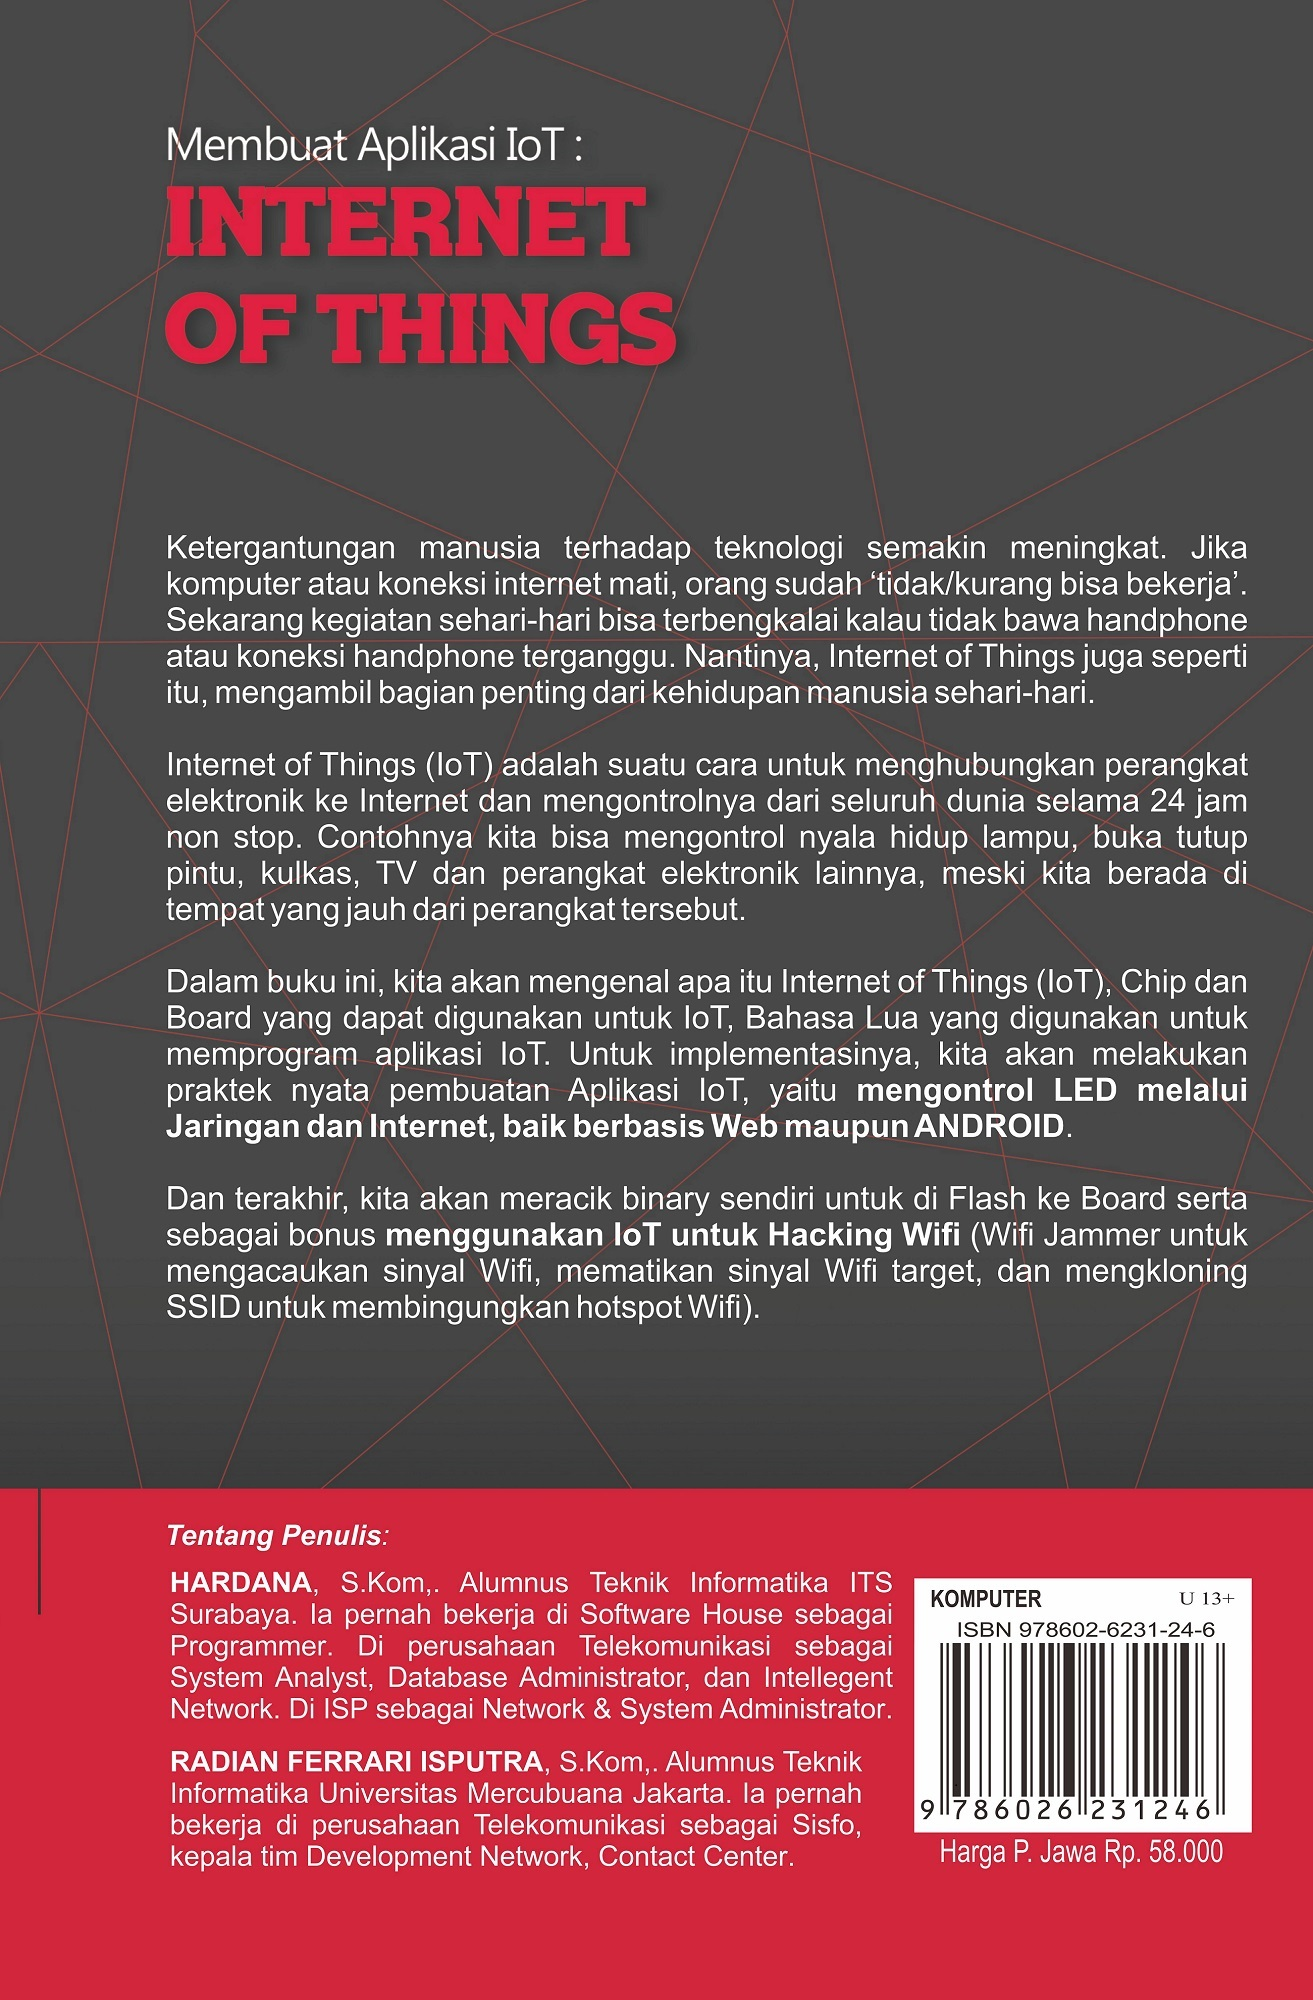 BUKU KOMPUTER MEMBUAT APLIKASI IOT: INTERNET OF THINGS - LOKOMEDIA ...